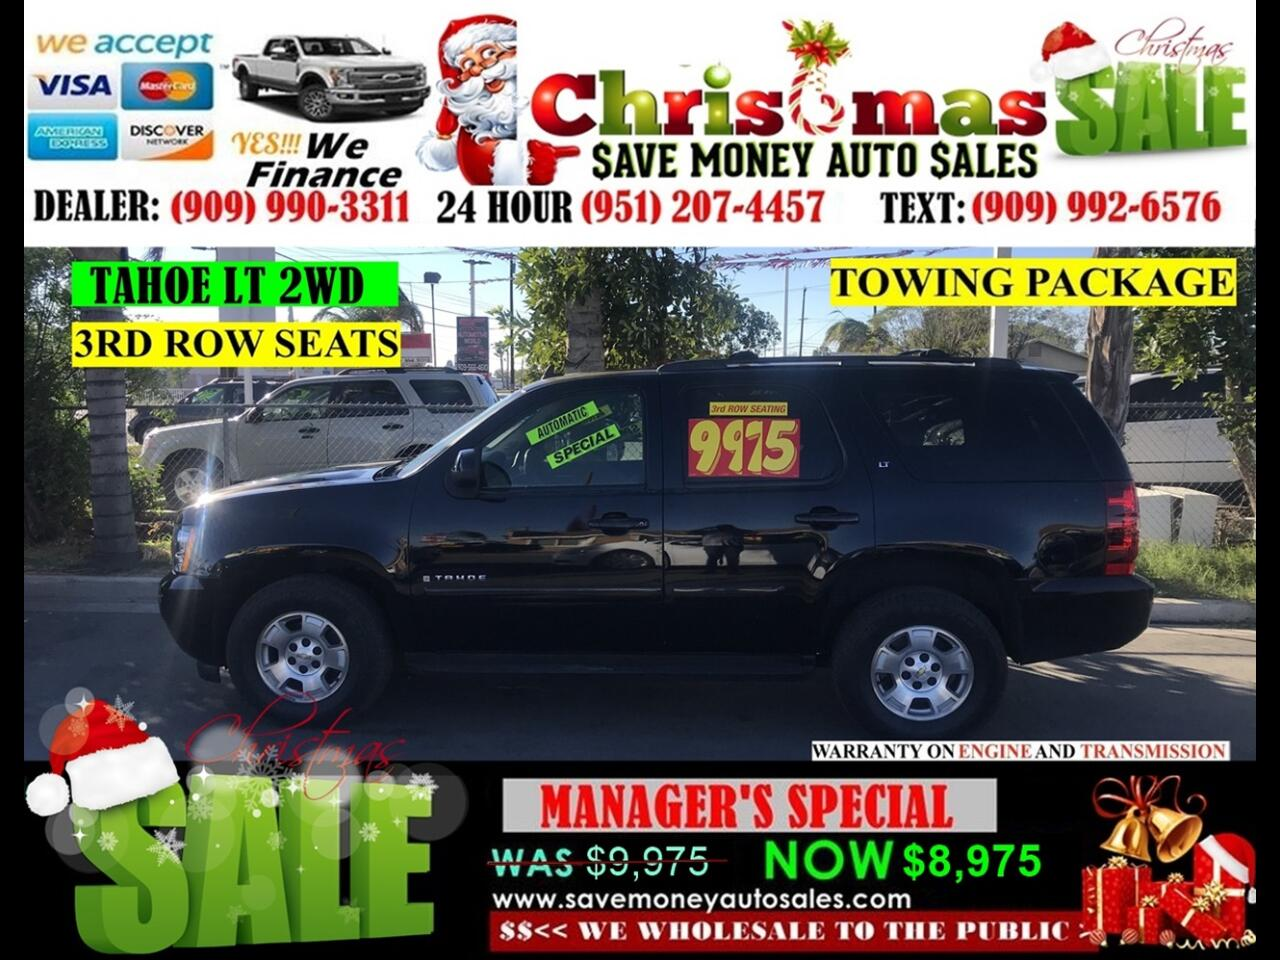 2007 Chevrolet Tahoe LT 2WD > 3RD ROW SEAT> TOWING PKG> FULL LEATHER> S